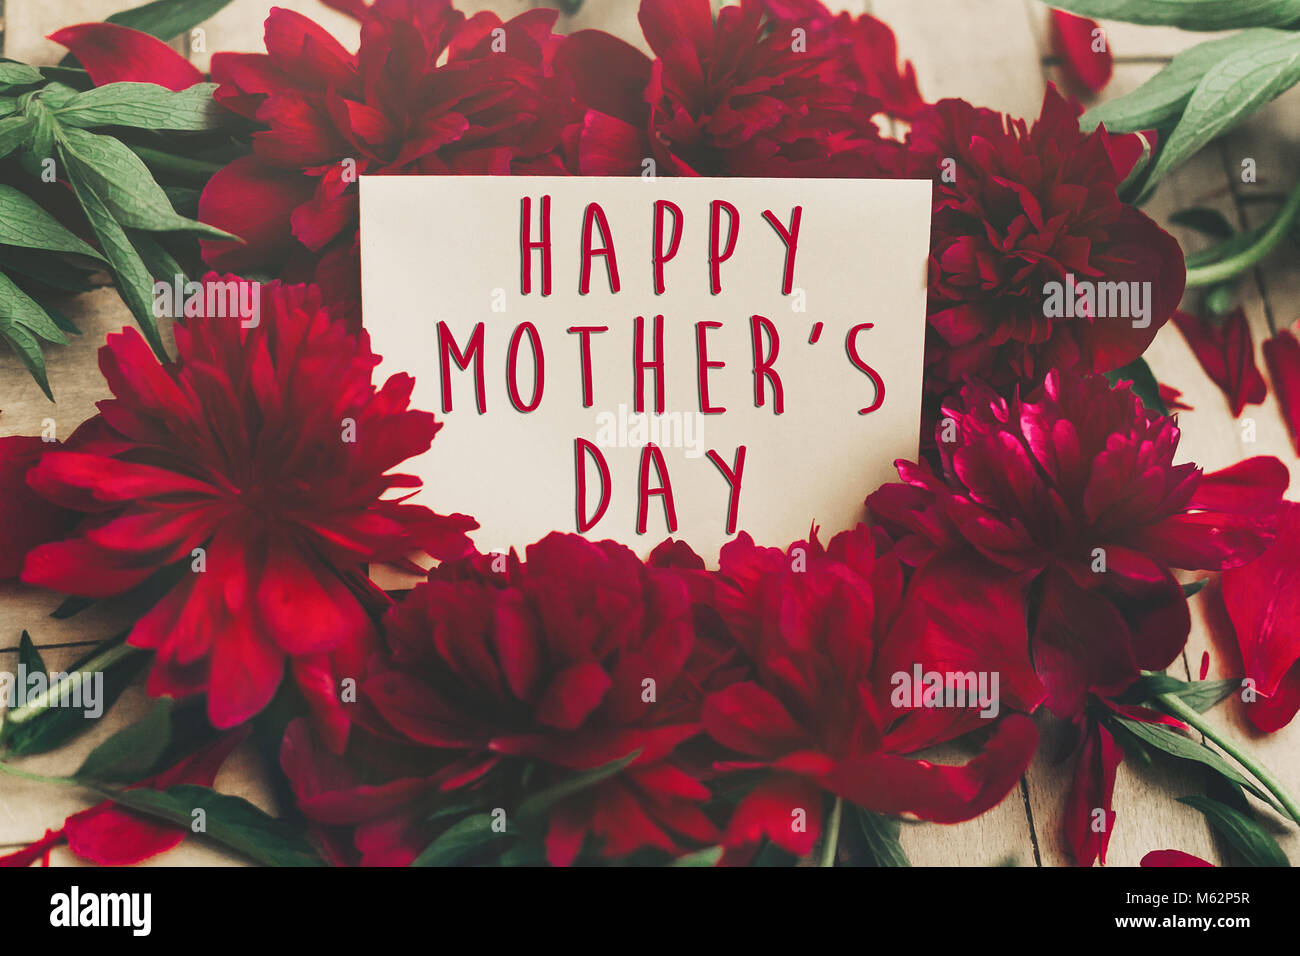 Happy mothers day text sign on craft paper card beautiful red happy mothers day text sign on craft paper card beautiful red peonies on wooden rustic background modern greeting card mothers day stylish bloomin kristyandbryce Choice Image